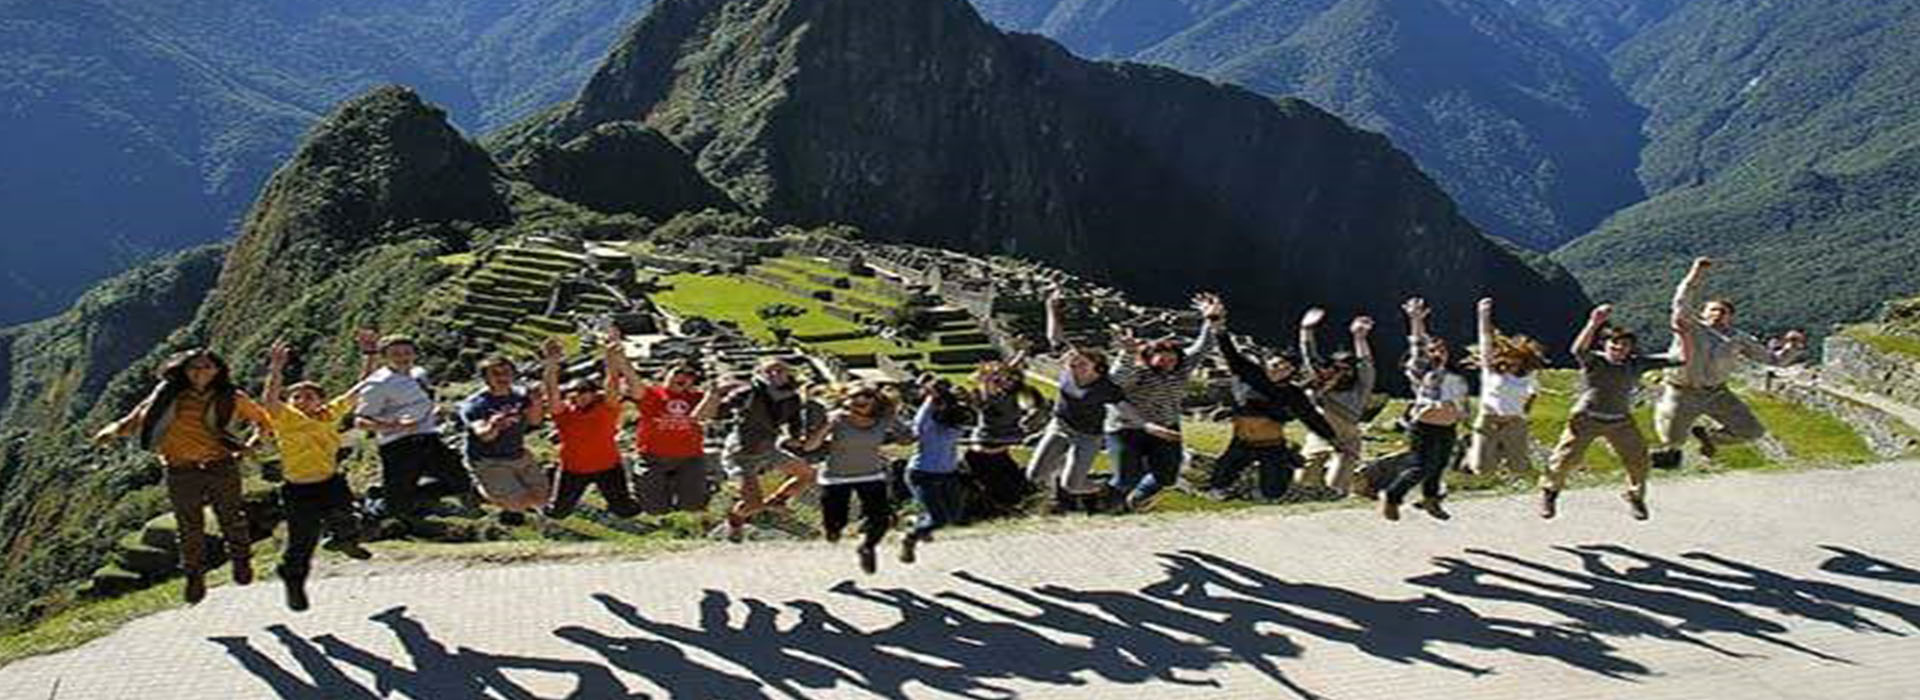 Inka Jungle Trek to Machu Picchu 4 days return by bus last day